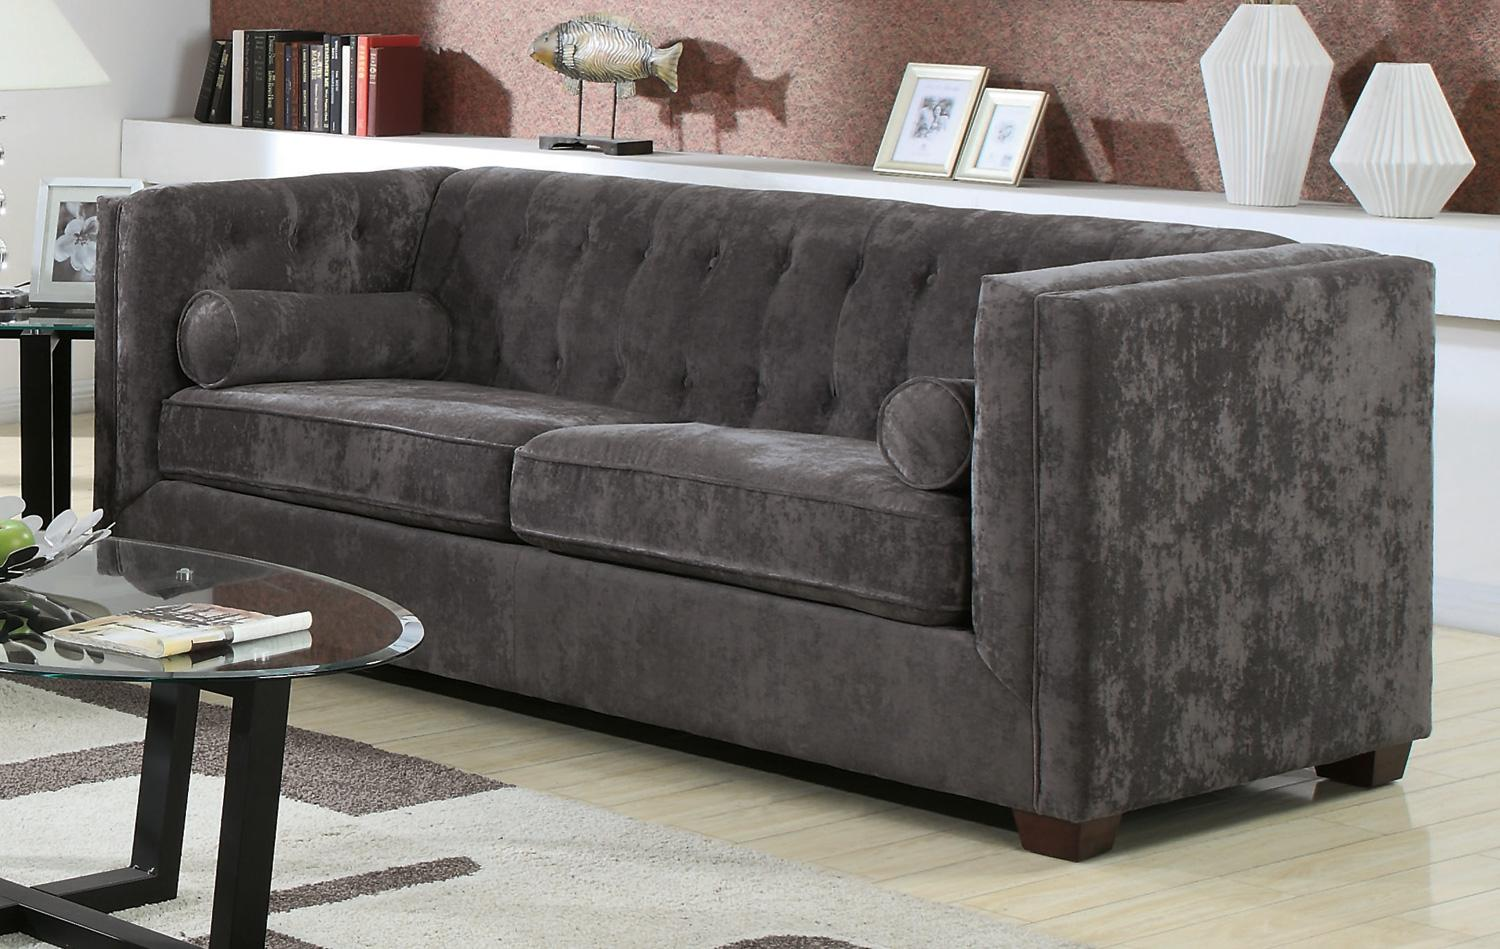 Coaster alexis charcoal sofa dallas tx living room sofa for Charcoal sofa living room